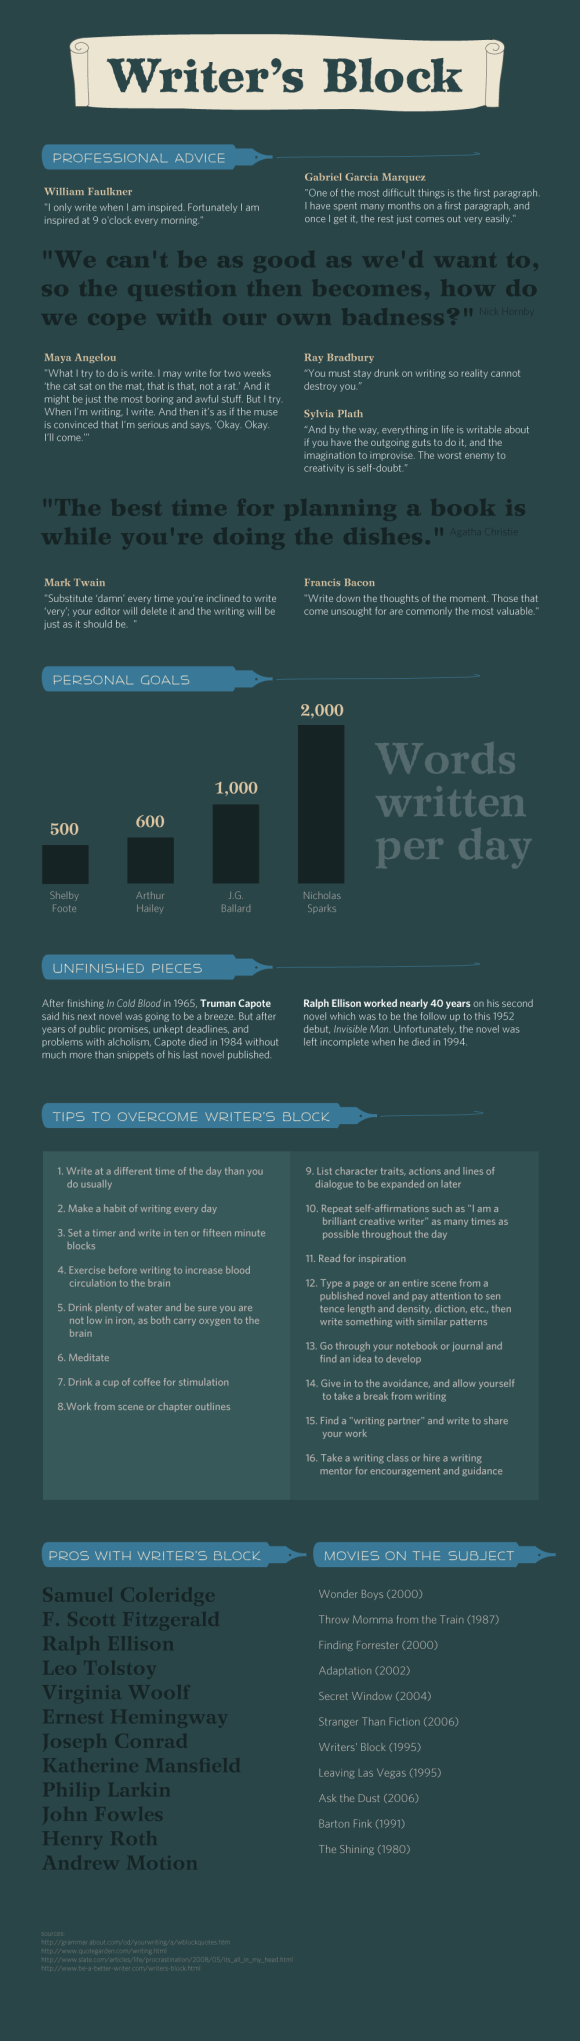 1 writersblock infographic 4 Best Writers Block Infographics